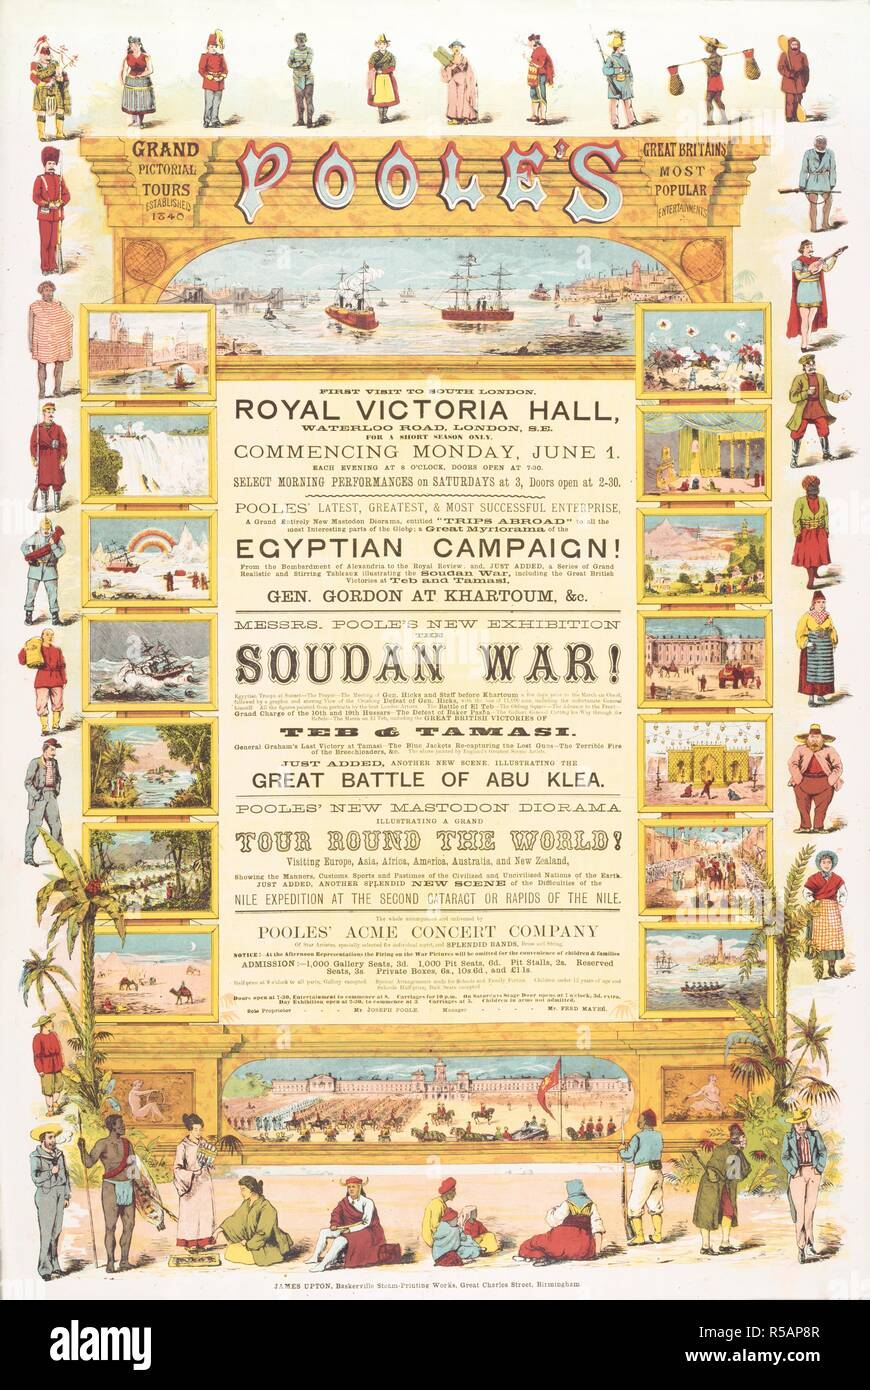 Royal Victoria Hall, Lambeth. Poole's Grand Pictorial Tours, 1885, est. 1840. Pooles' latest mastodon diorama, entitled 'Trips abroad' to all the most interesting parts of the globe. Visiting Europe, Asia, Africa, America, Australia, and New Zealand, showing the manners, customs, sports and pastimes of the civilized and uncivilized nations of the earth. Poole's new exhibition, the Soudan war! The whole accompanied and enlivened by Pooles' Acme Concert Company of star artistes. A collection of pamphlets, handbills, and miscellaneous printed matter relating to Victorian entertainment and everyda - Stock Image